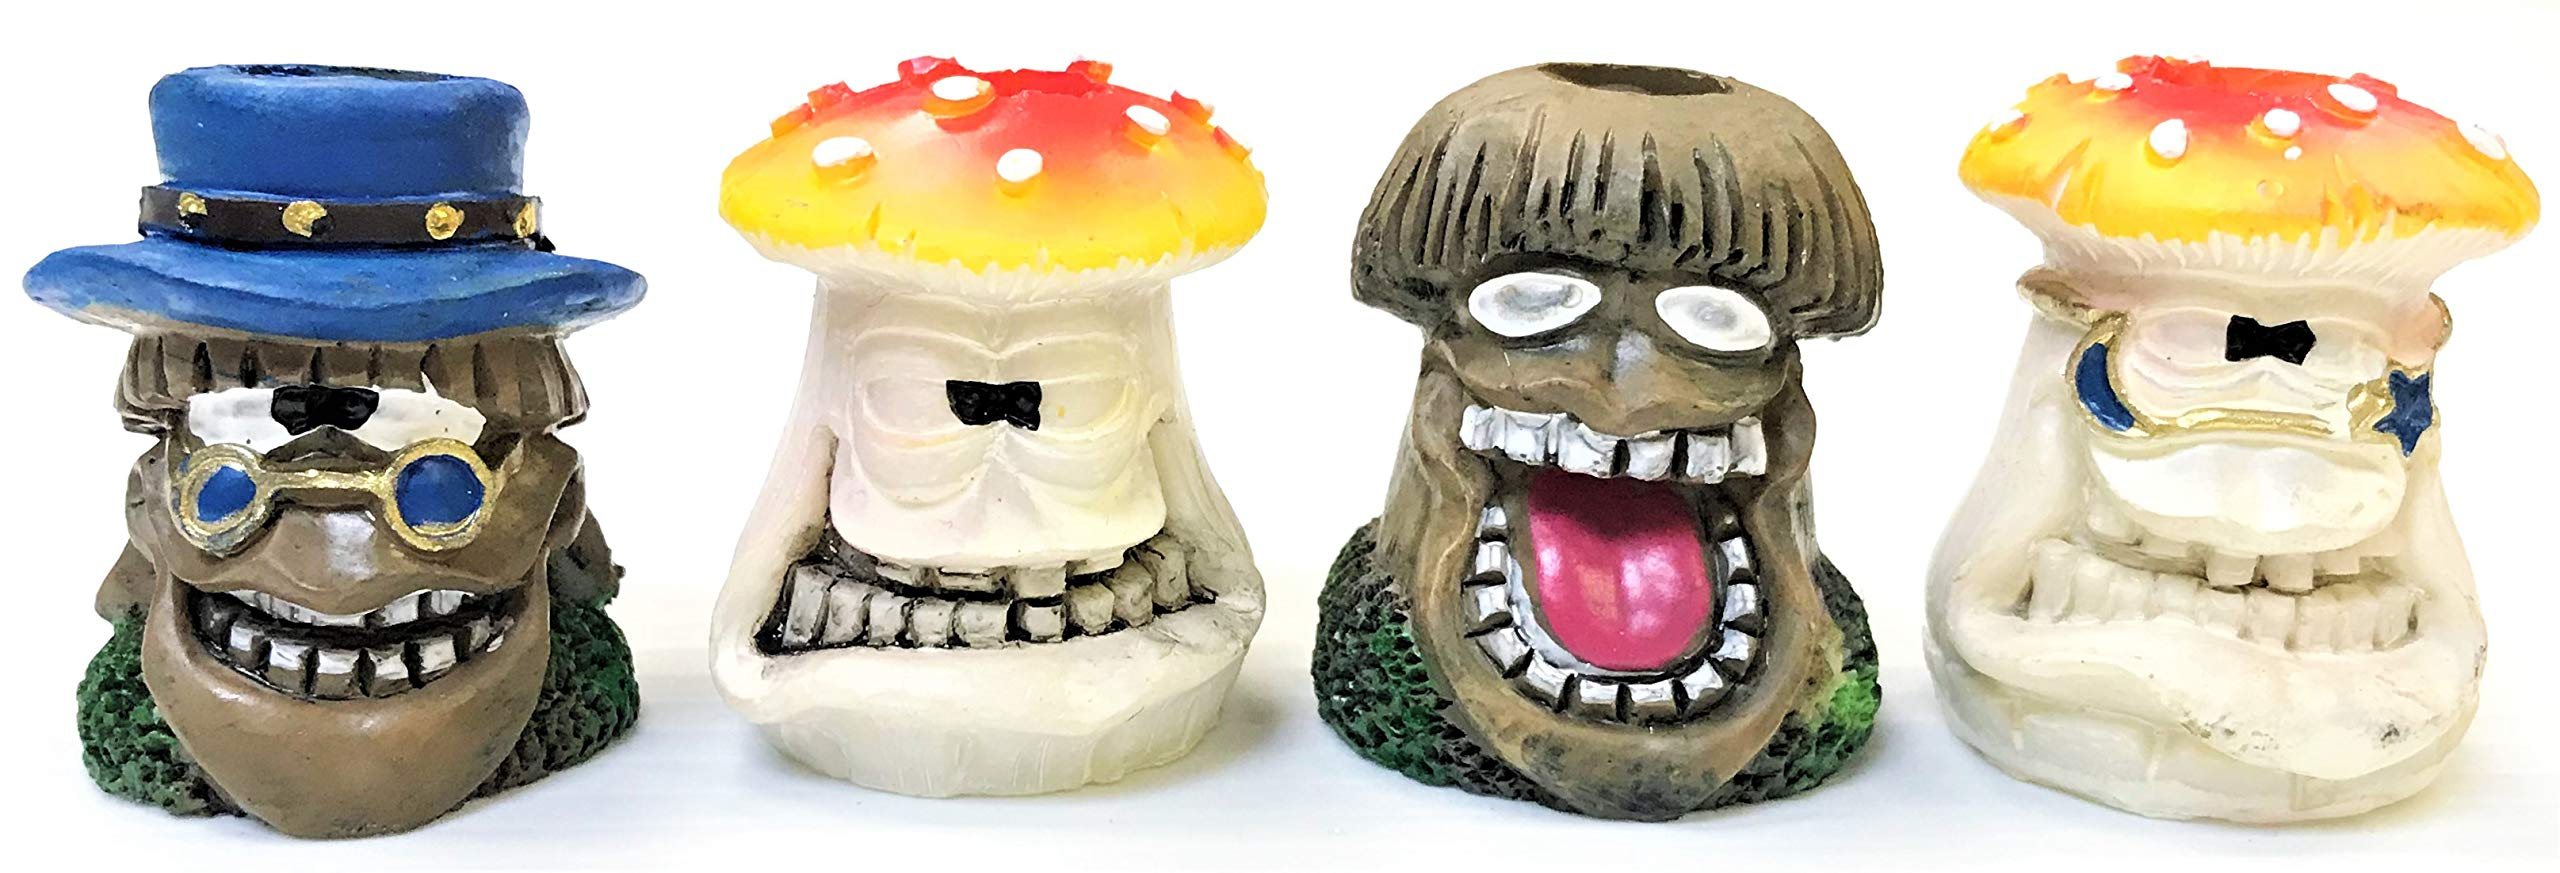 Eclipse Novelty Collectible Mushroom Head Design Hand Painted Resin Cigarette Snuffer, 4ct, Smoke Head Stop, Butt21-4